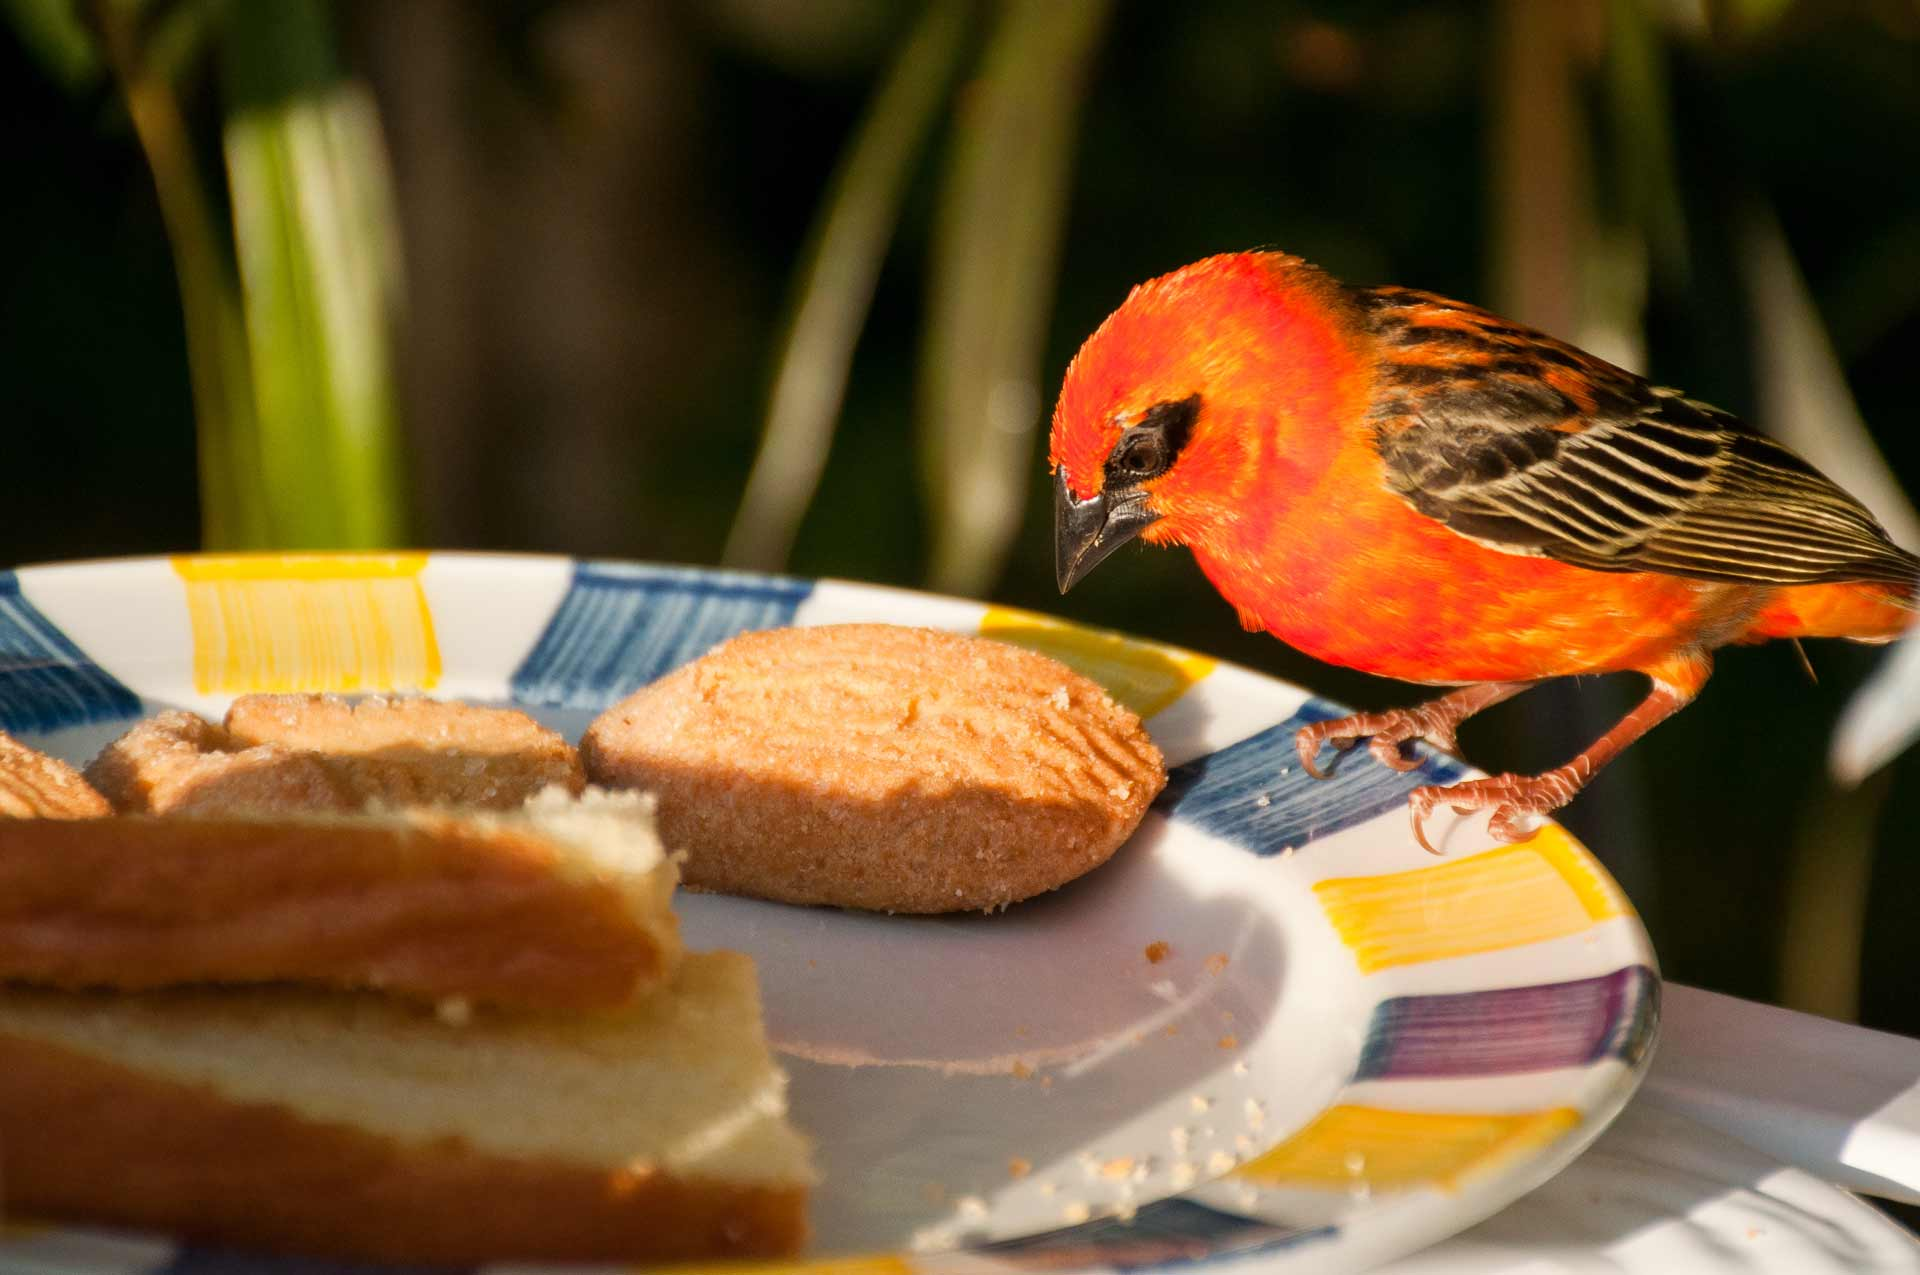 A Red Fody bird interrupts some tourist's breakfast and helps itself to some biscuits while standing on the edge of the plate